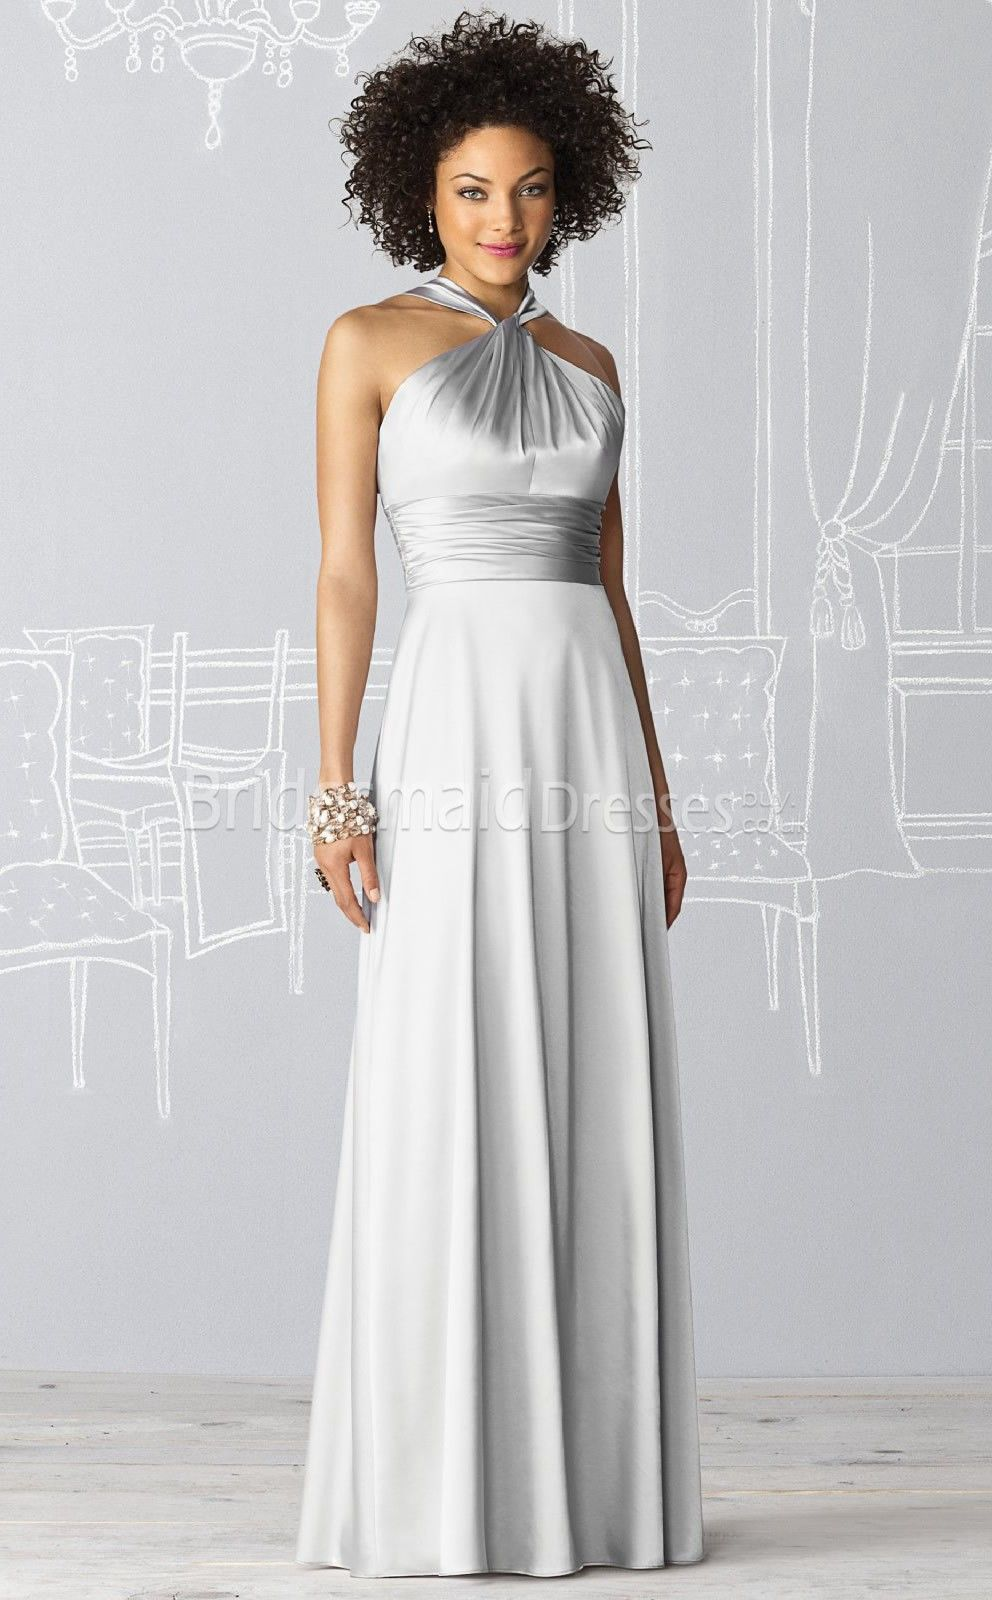 Cheap silver dresses for weddings  I was thinking long dresses would be too warm but Pam said you all